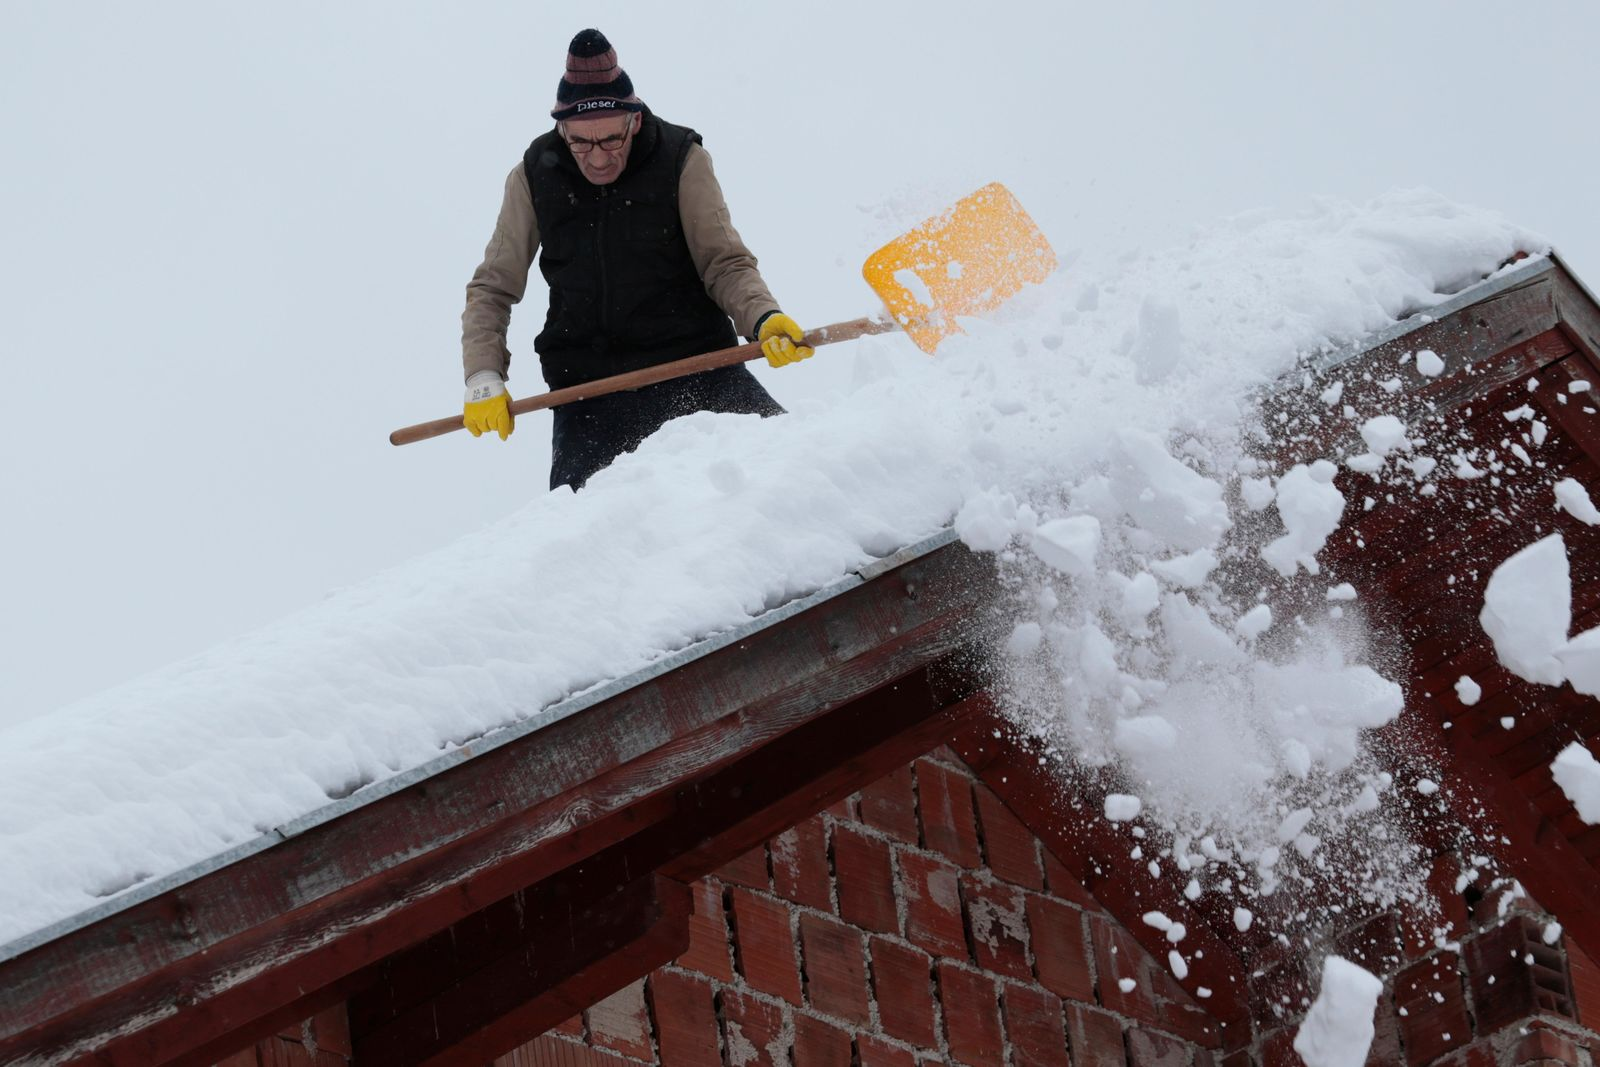 A man shovels snow from the roof of his house in a remote village near Kladanj, 80 kms north of Sarajevo, Bosnia, Friday, Jan. 11. (AP Photo/Amel Emric)